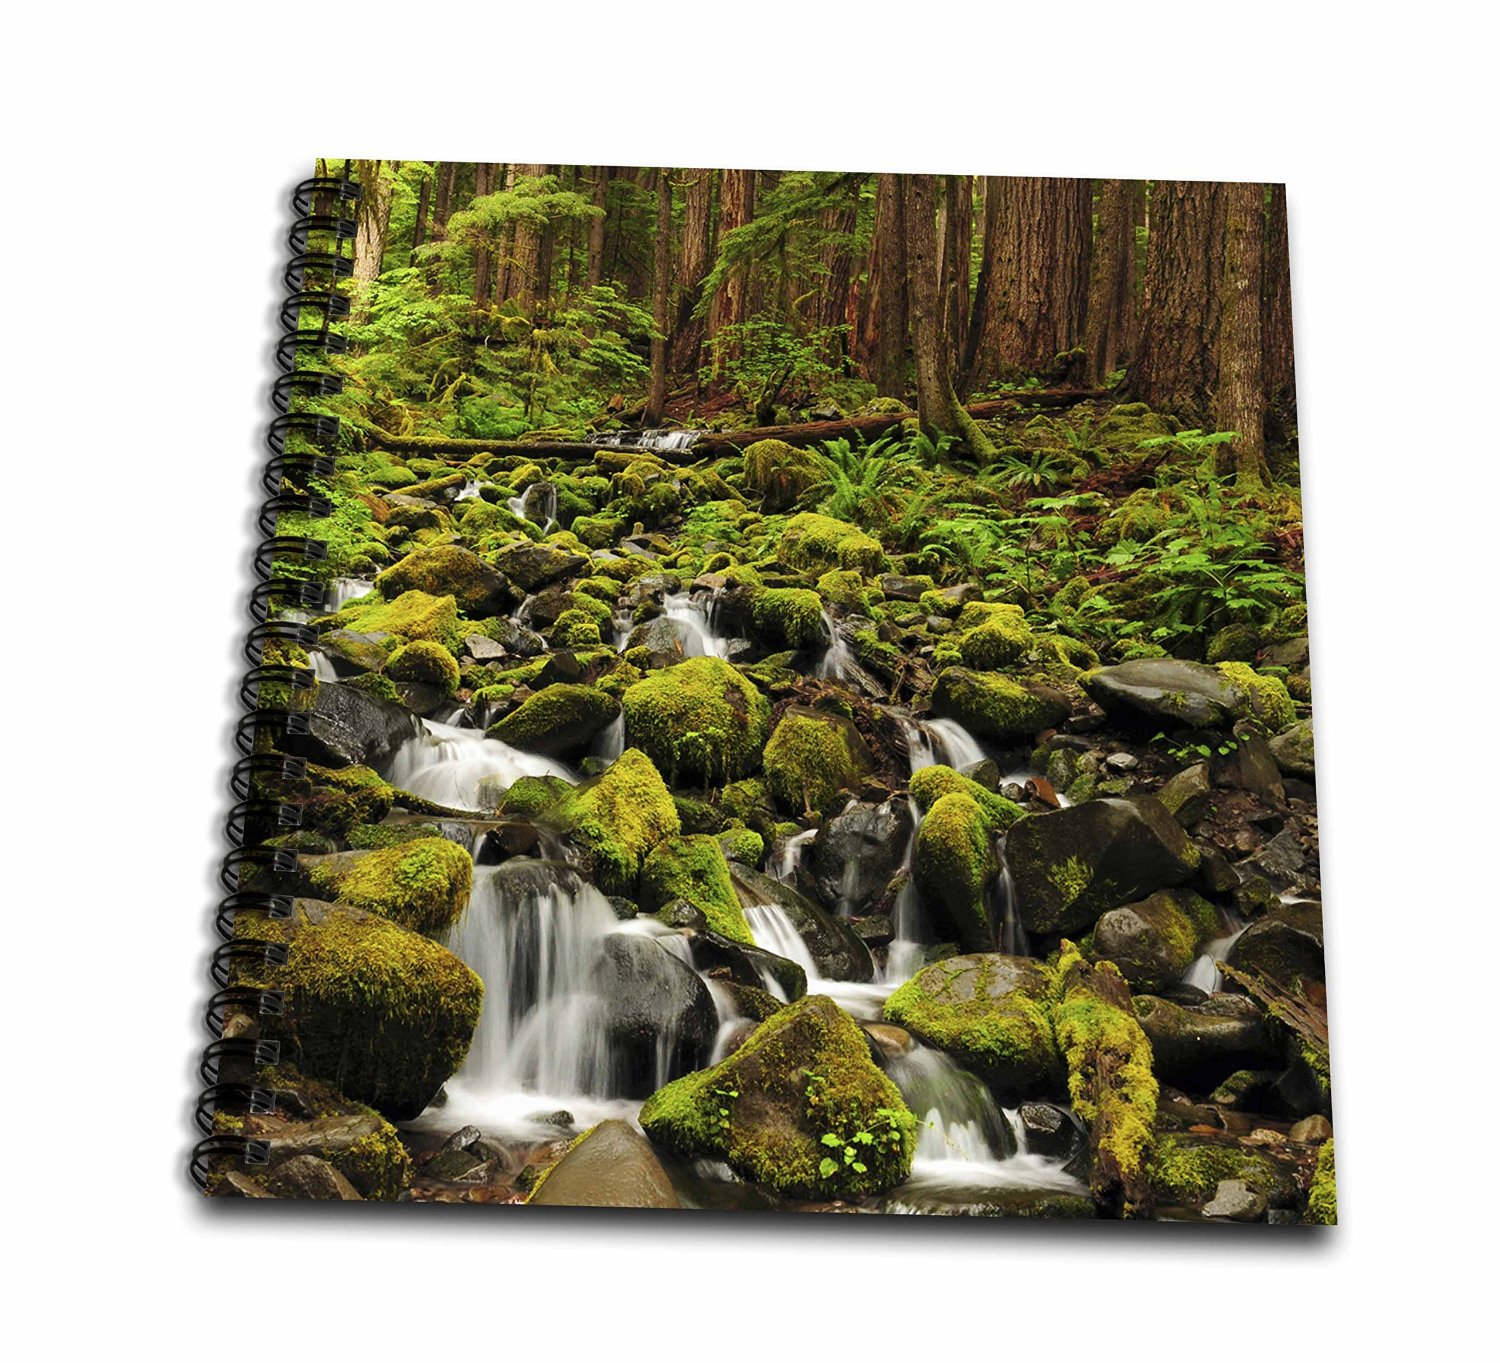 Danita Delimont - Waterfalls - Sol Duc Waterfalls, Washington, USA - US48 MHE0003 - Michel Hersen - Memory Book 12 x 12 inch (db_148348_2)